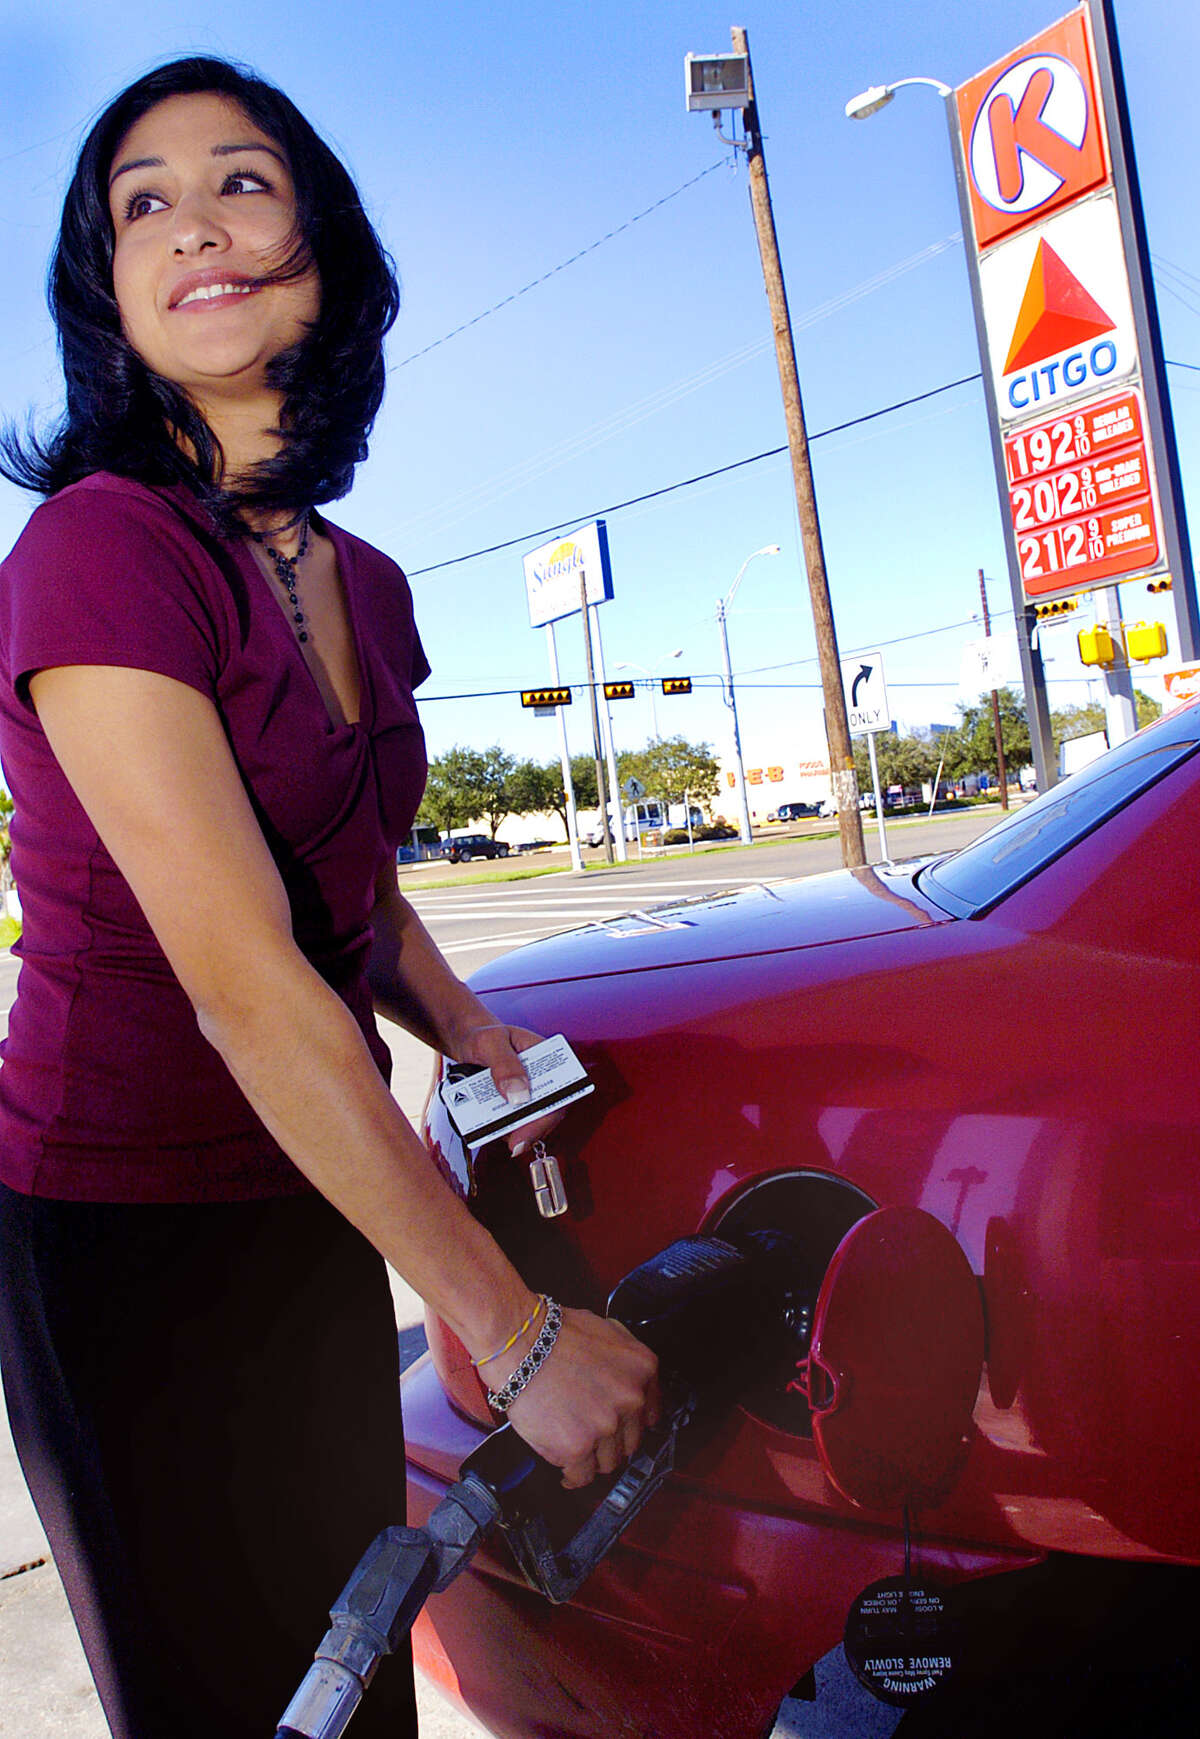 Erika Garcia fills up Tuesday. Nov. 1, 2005. at the Circle K on Monroe Avenue and Austin Street in Harlingen, Texas. where gas was selling for $1.92 a gallon.